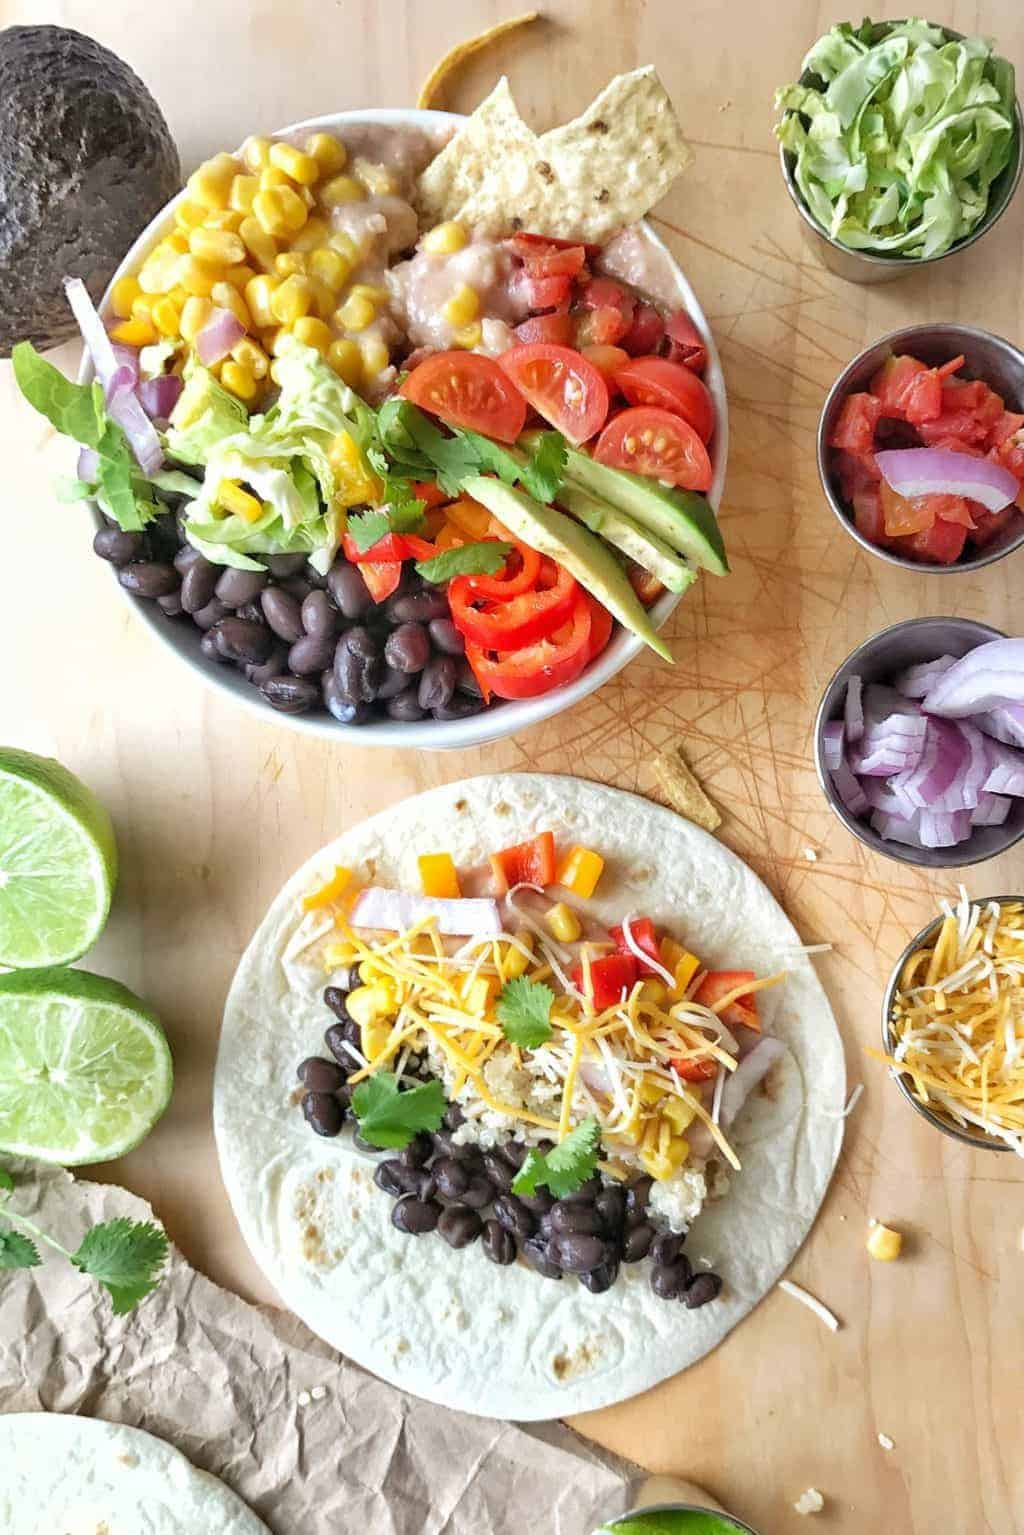 Fun Family Recipes: Southwestern Nacho Bean Bowls are a nacho meets veggie bowl combo. This healthy spin on nachos pleases everyone and saves calories and fat.